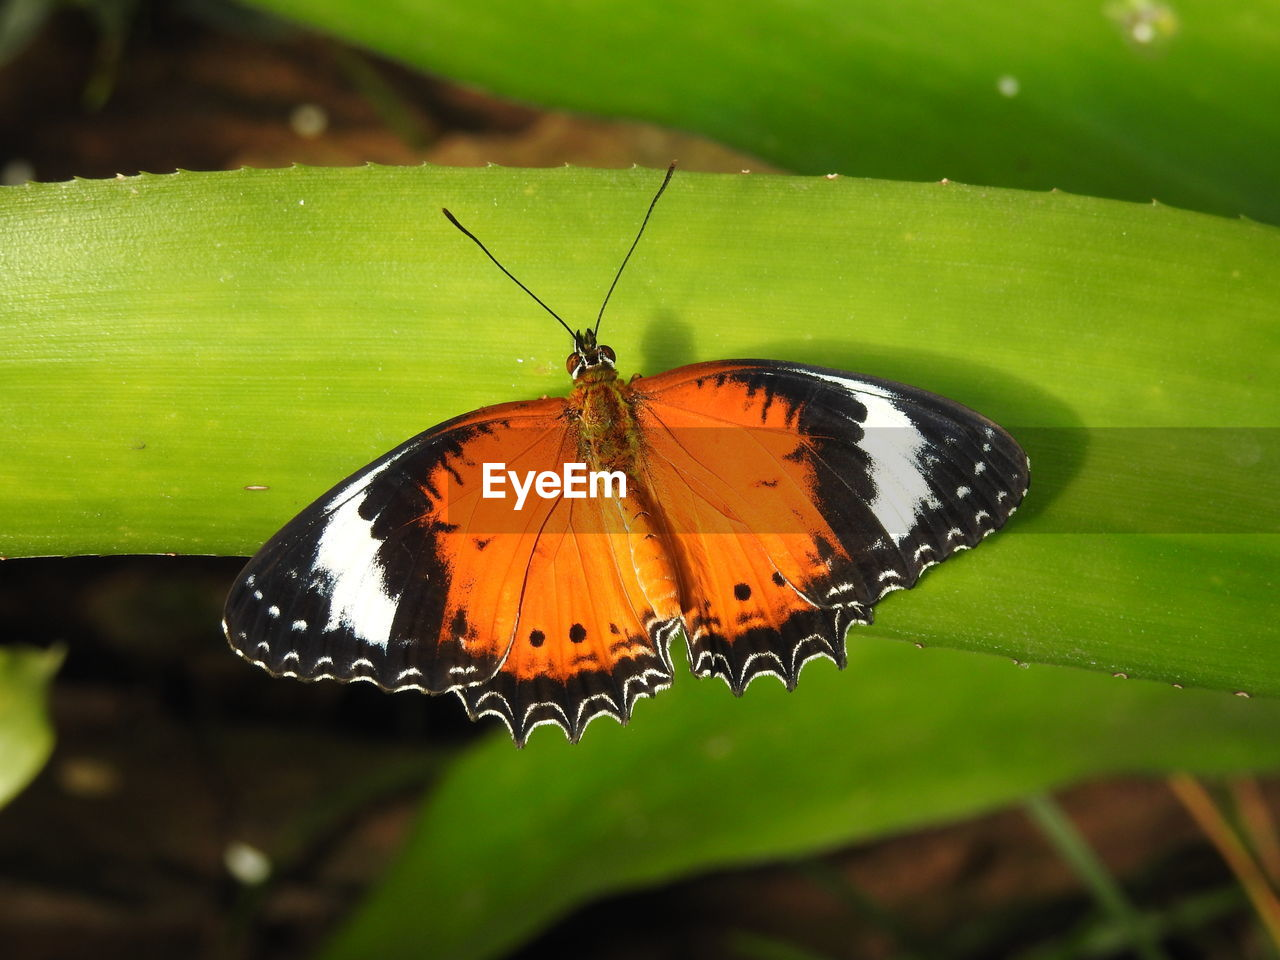 insect, invertebrate, animal wing, animal themes, butterfly - insect, one animal, animal wildlife, beauty in nature, animal, animals in the wild, close-up, plant part, leaf, plant, nature, focus on foreground, no people, day, green color, butterfly, outdoors